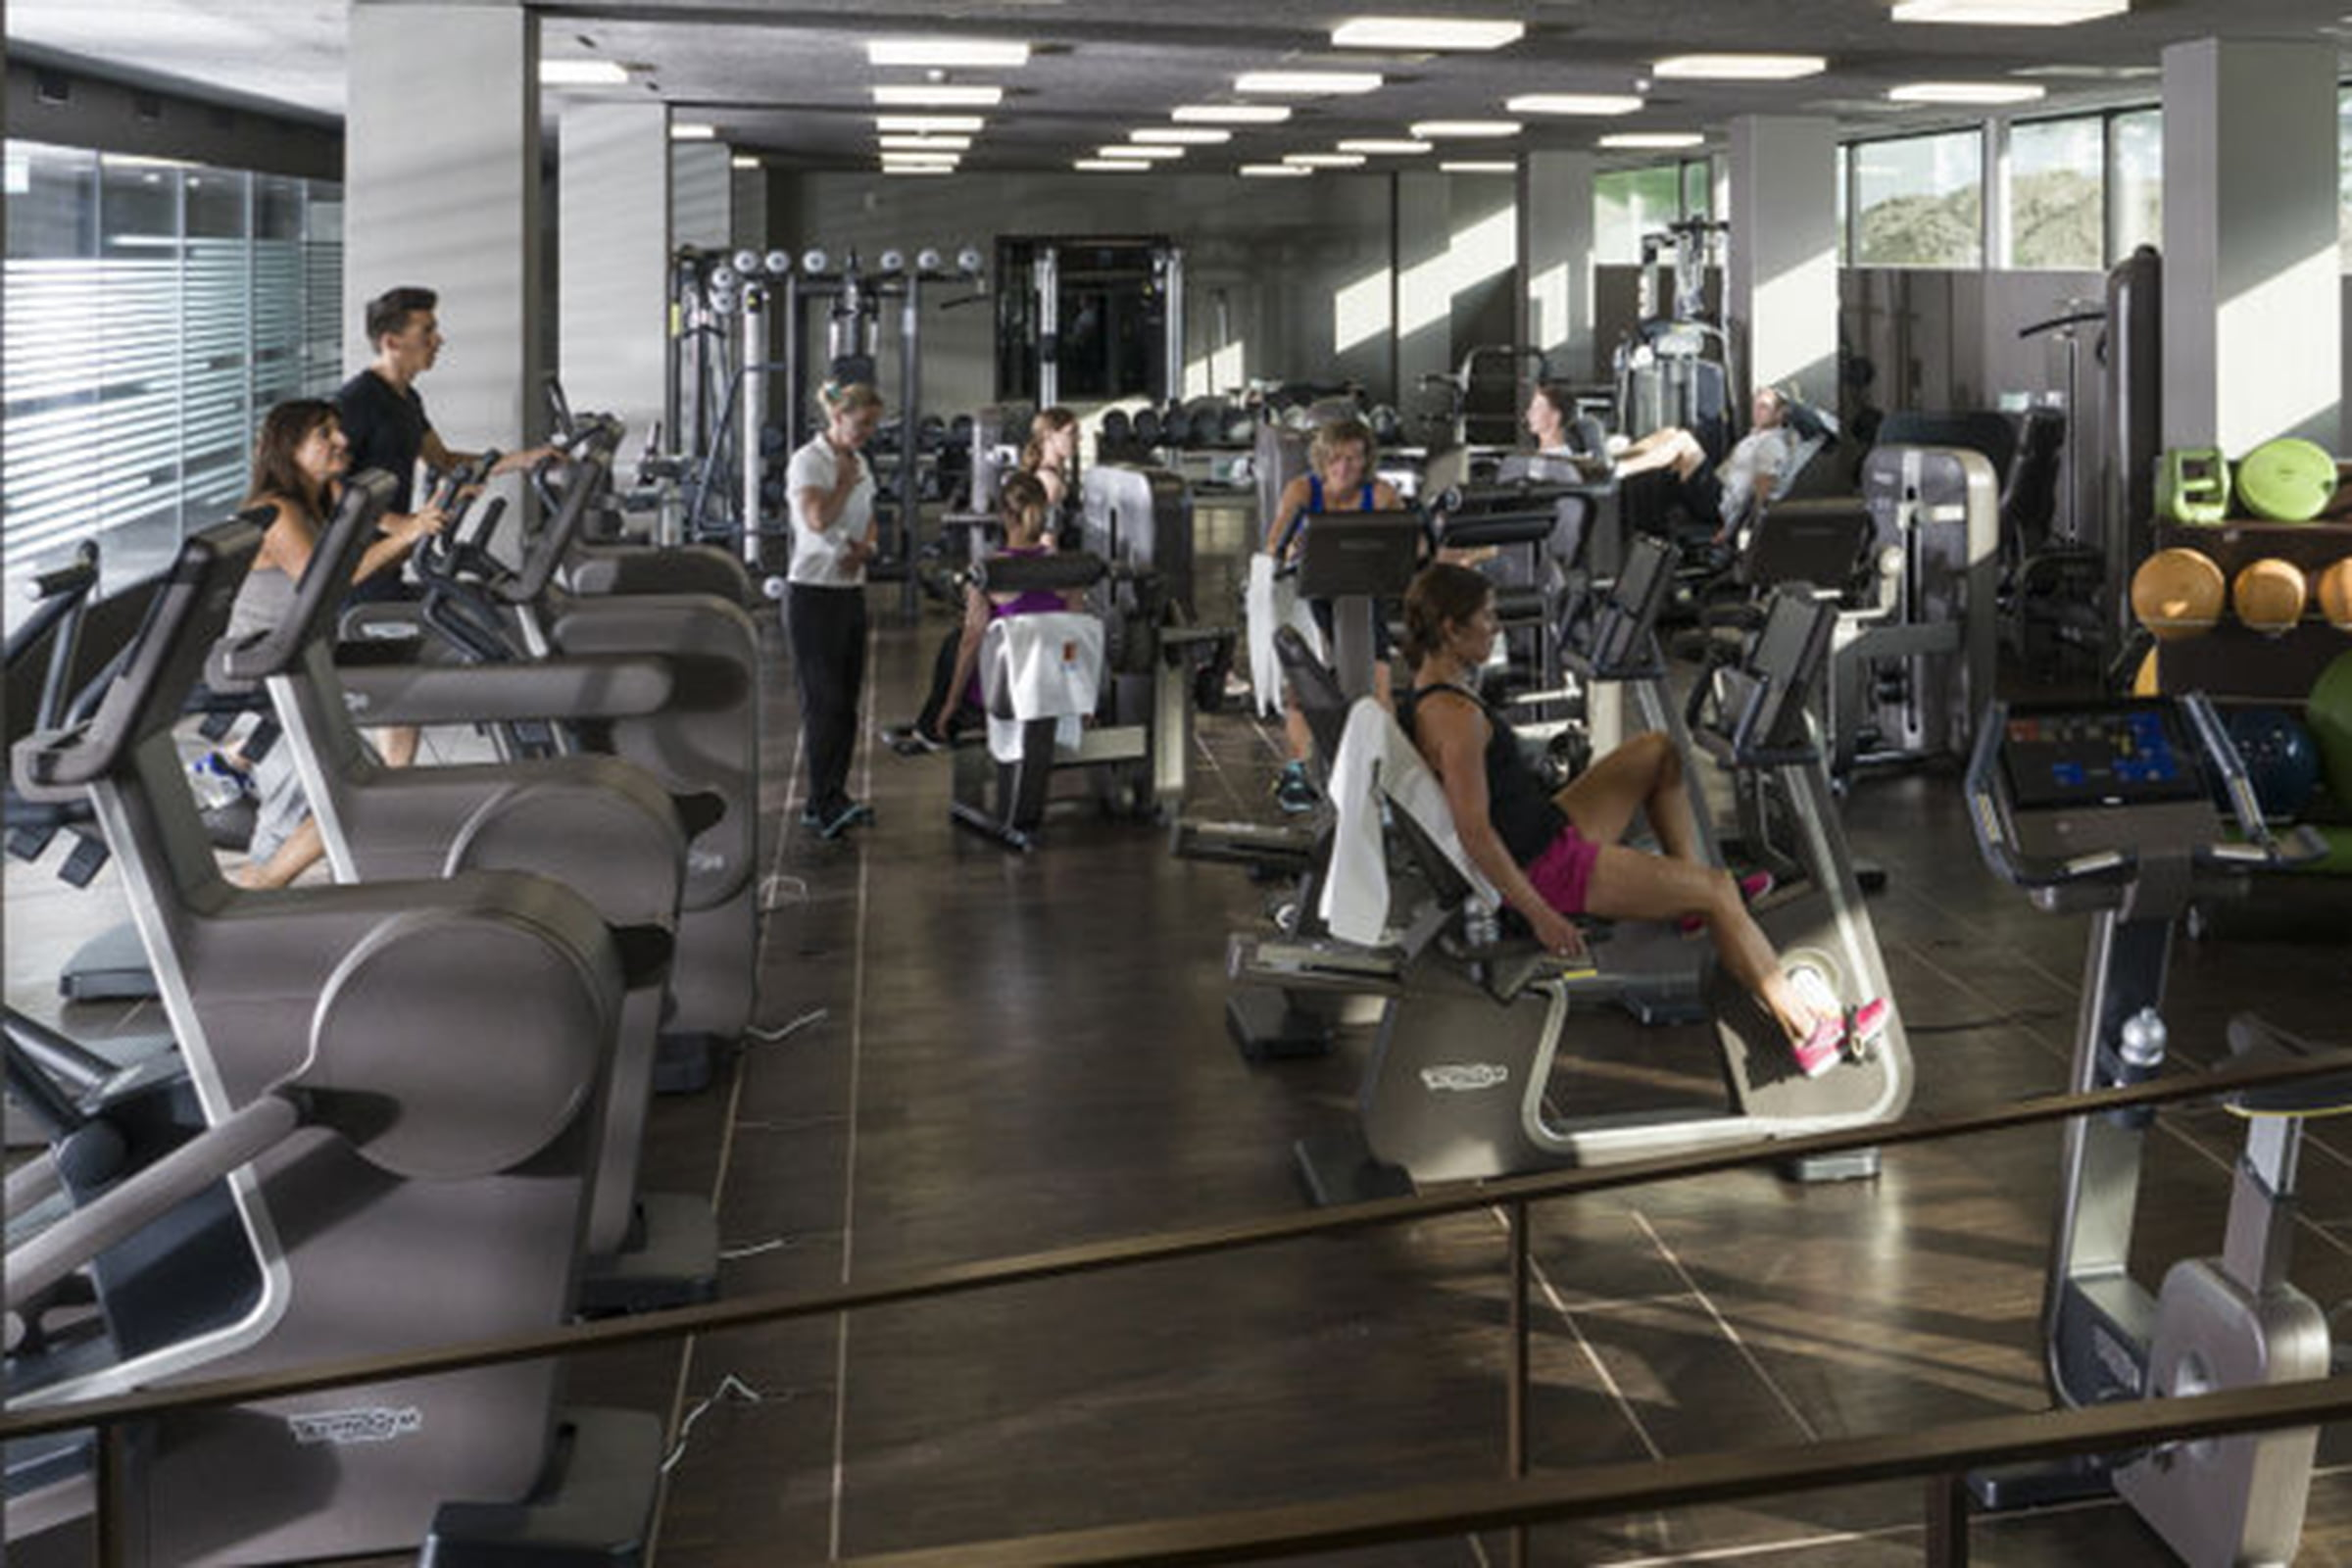 Fitness centre / fitness rooms